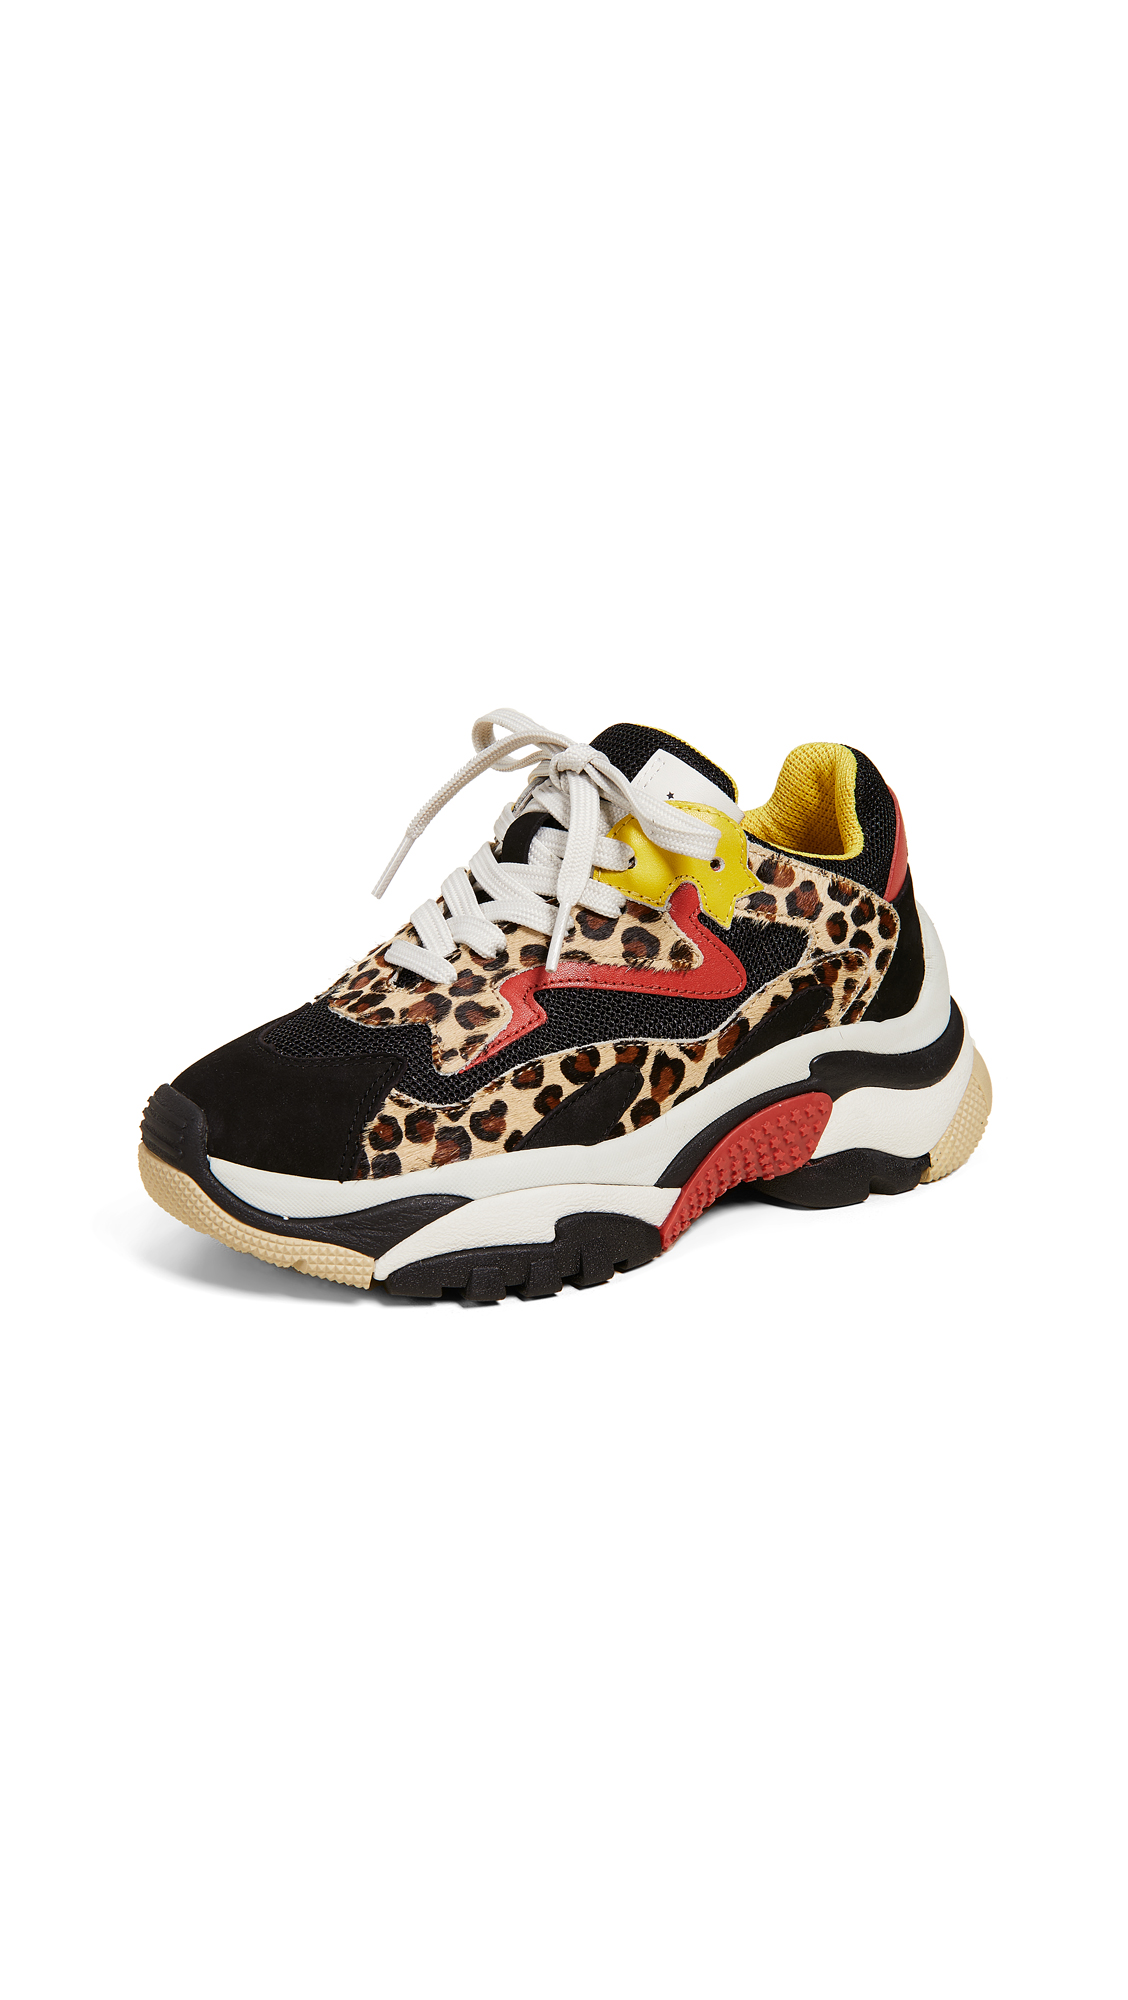 Ash Addict Trainers - Cheetah/Black